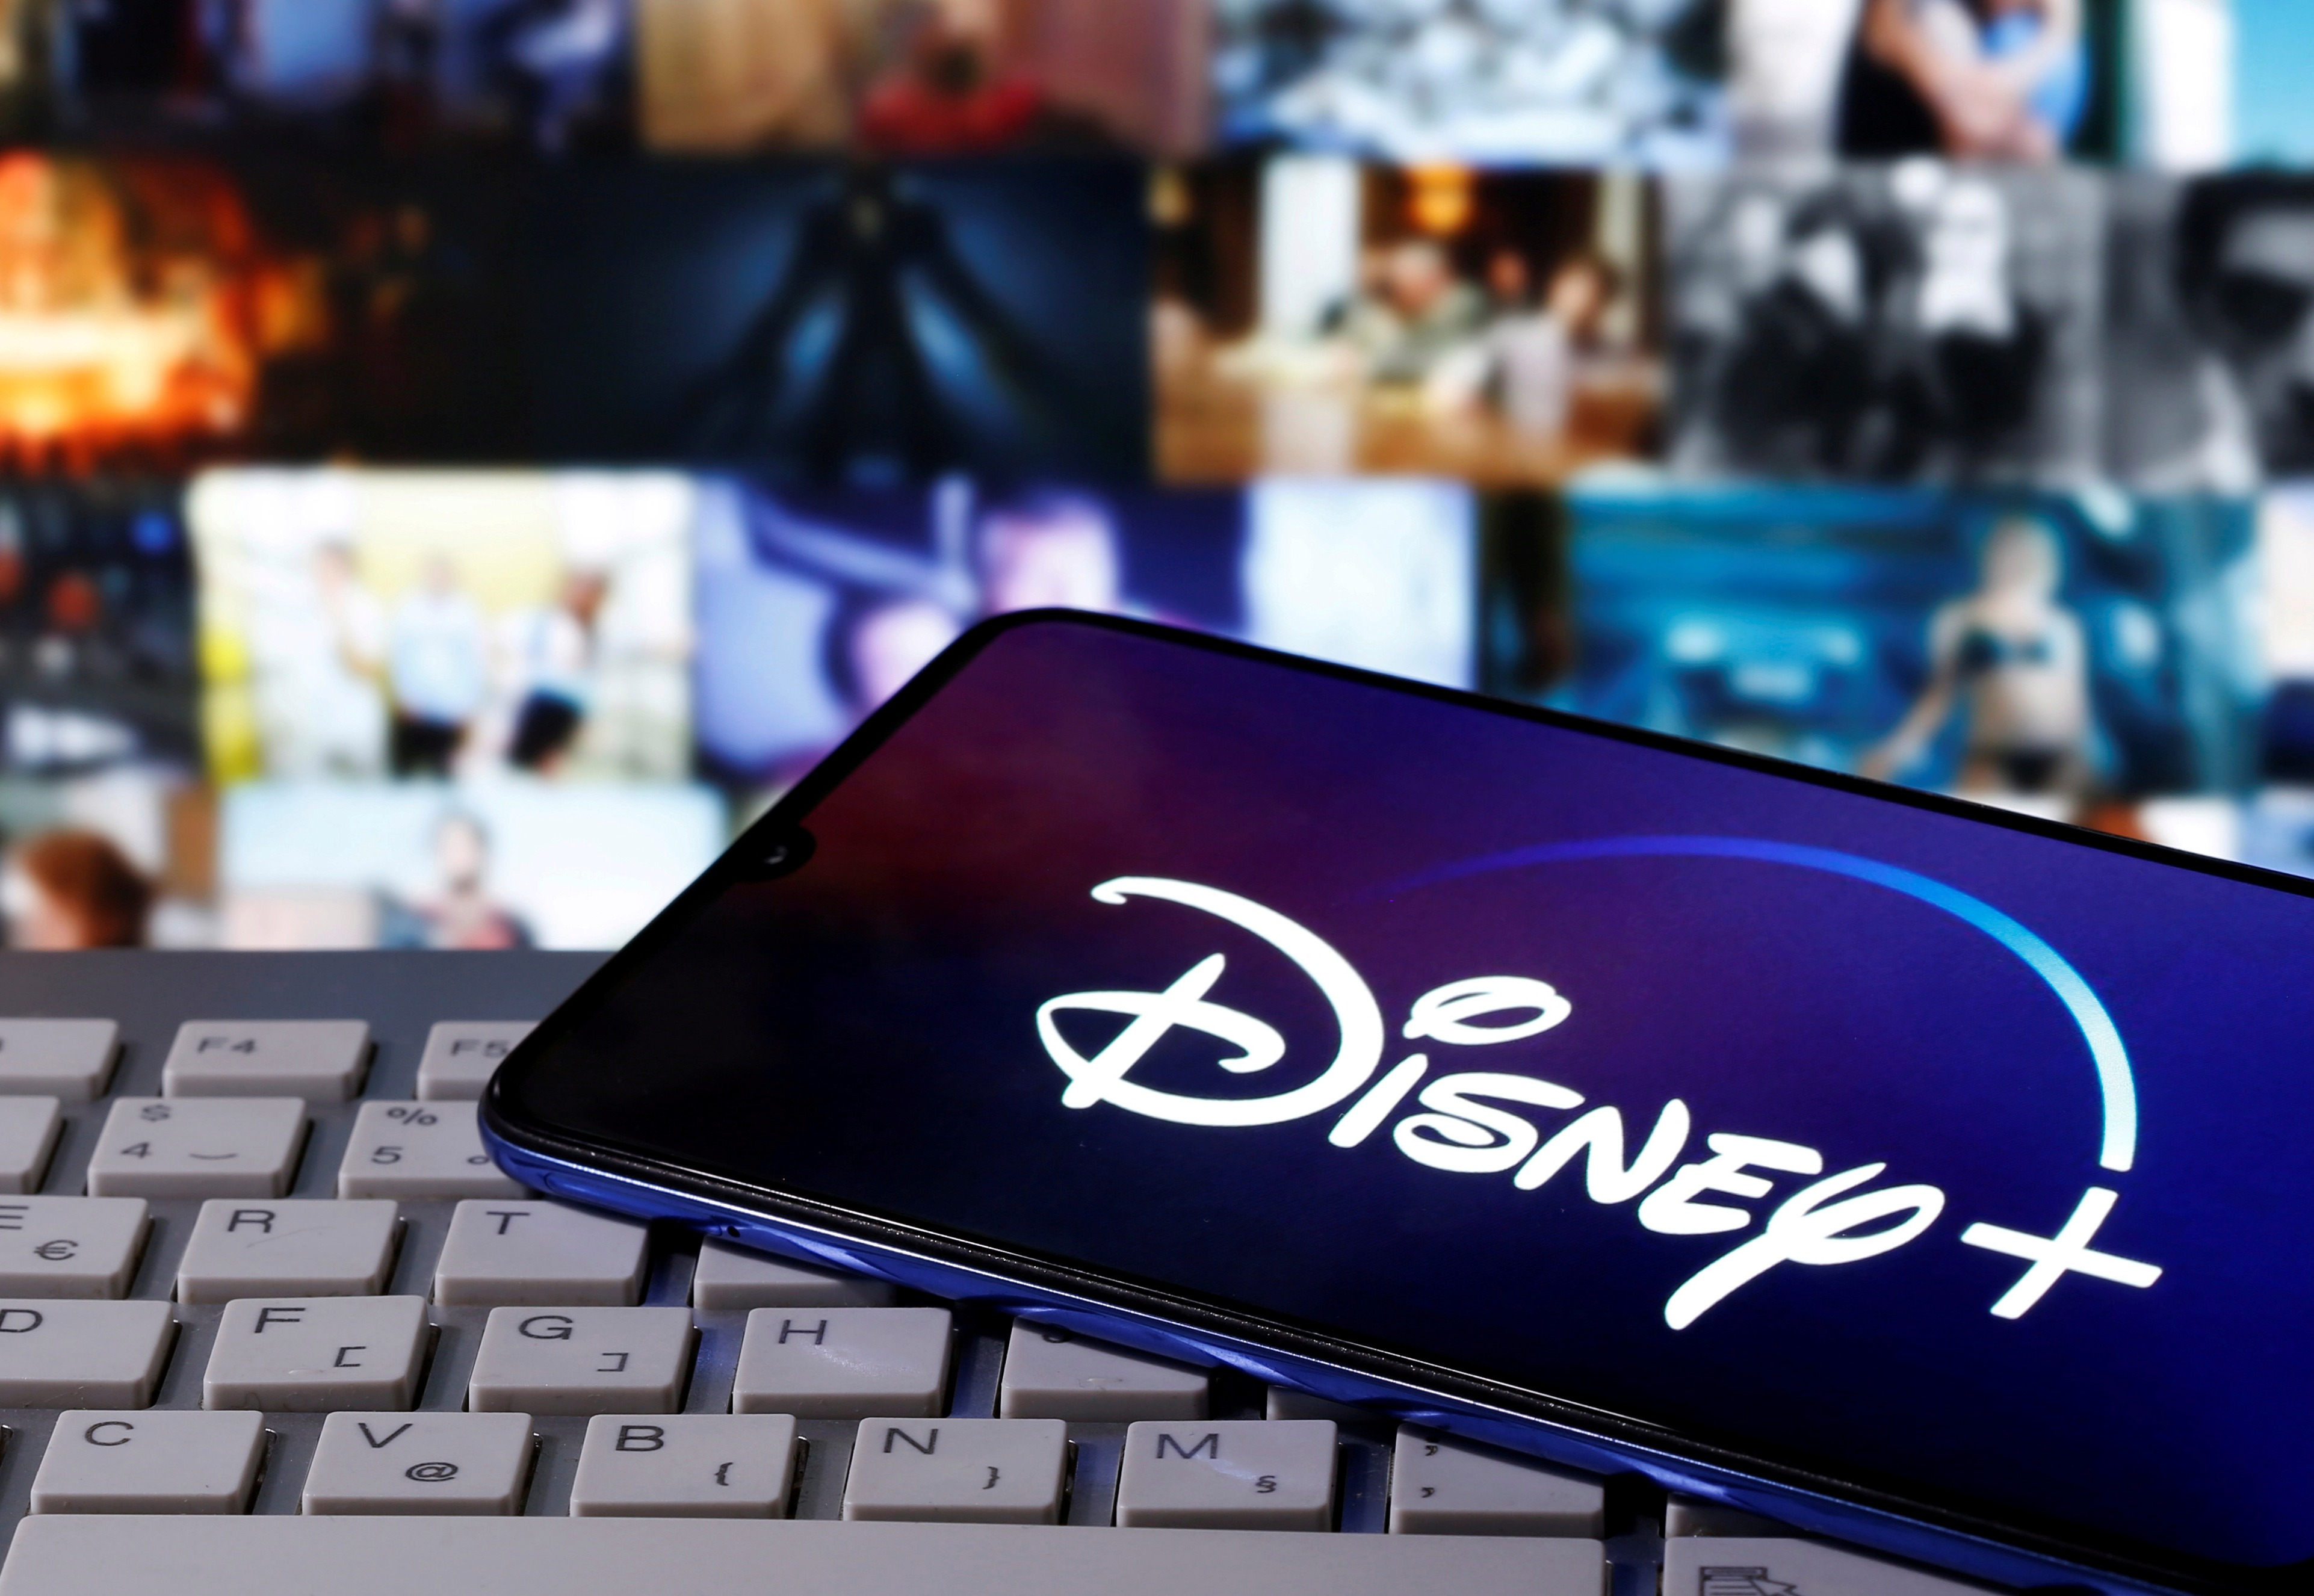 Disney+ is hiking prices by as much as £24 per year for some customers